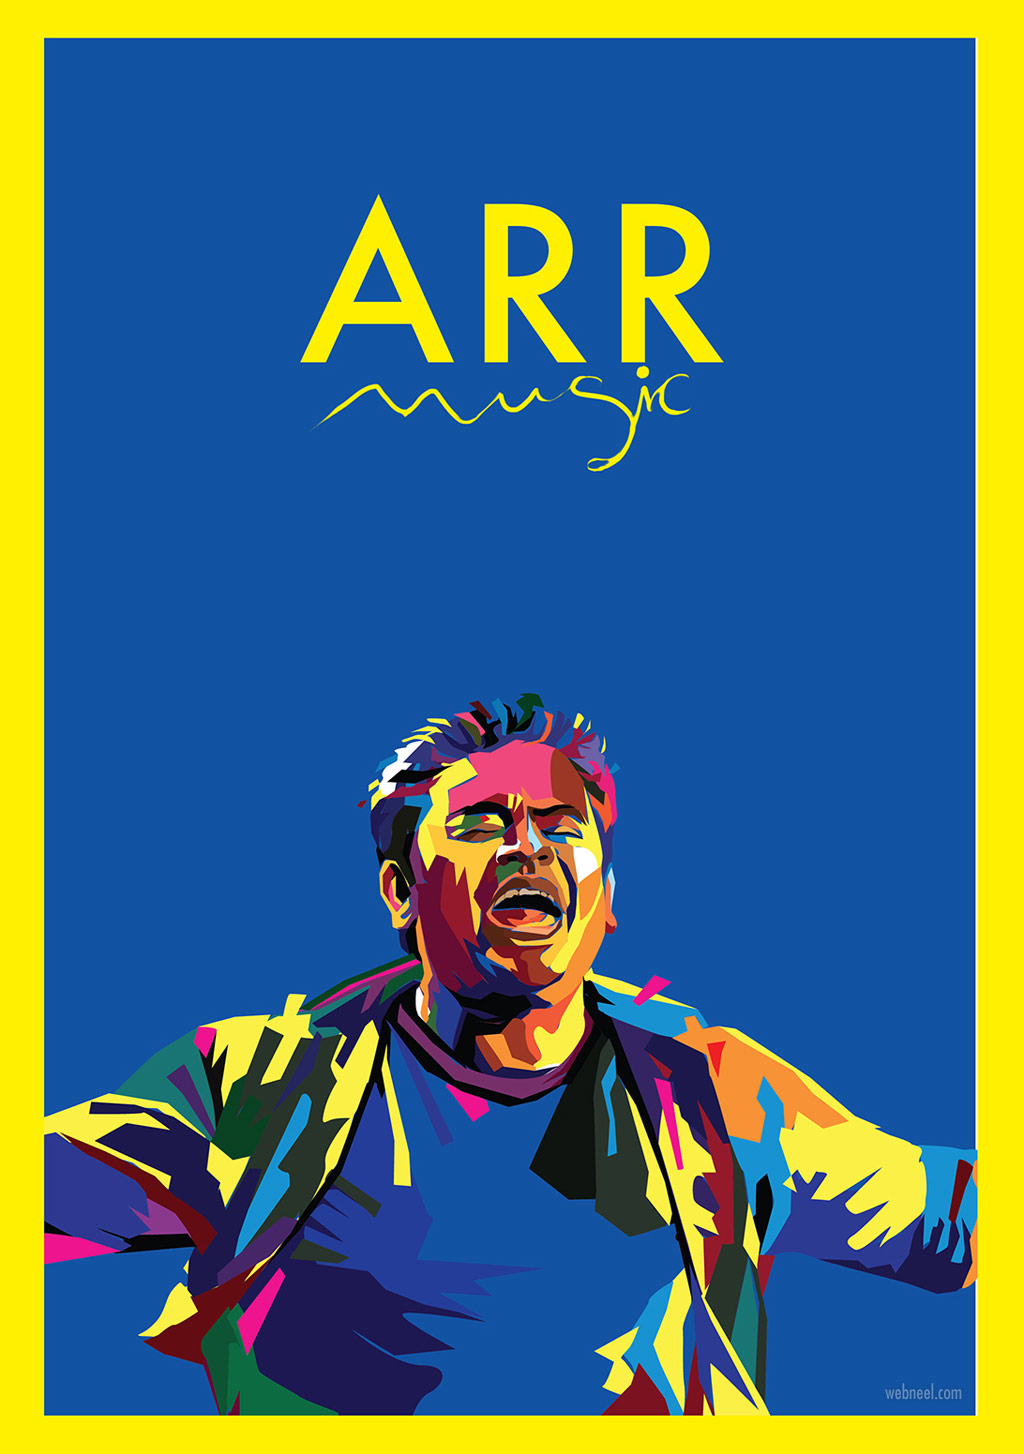 digital art vector illustration ar rahman musician